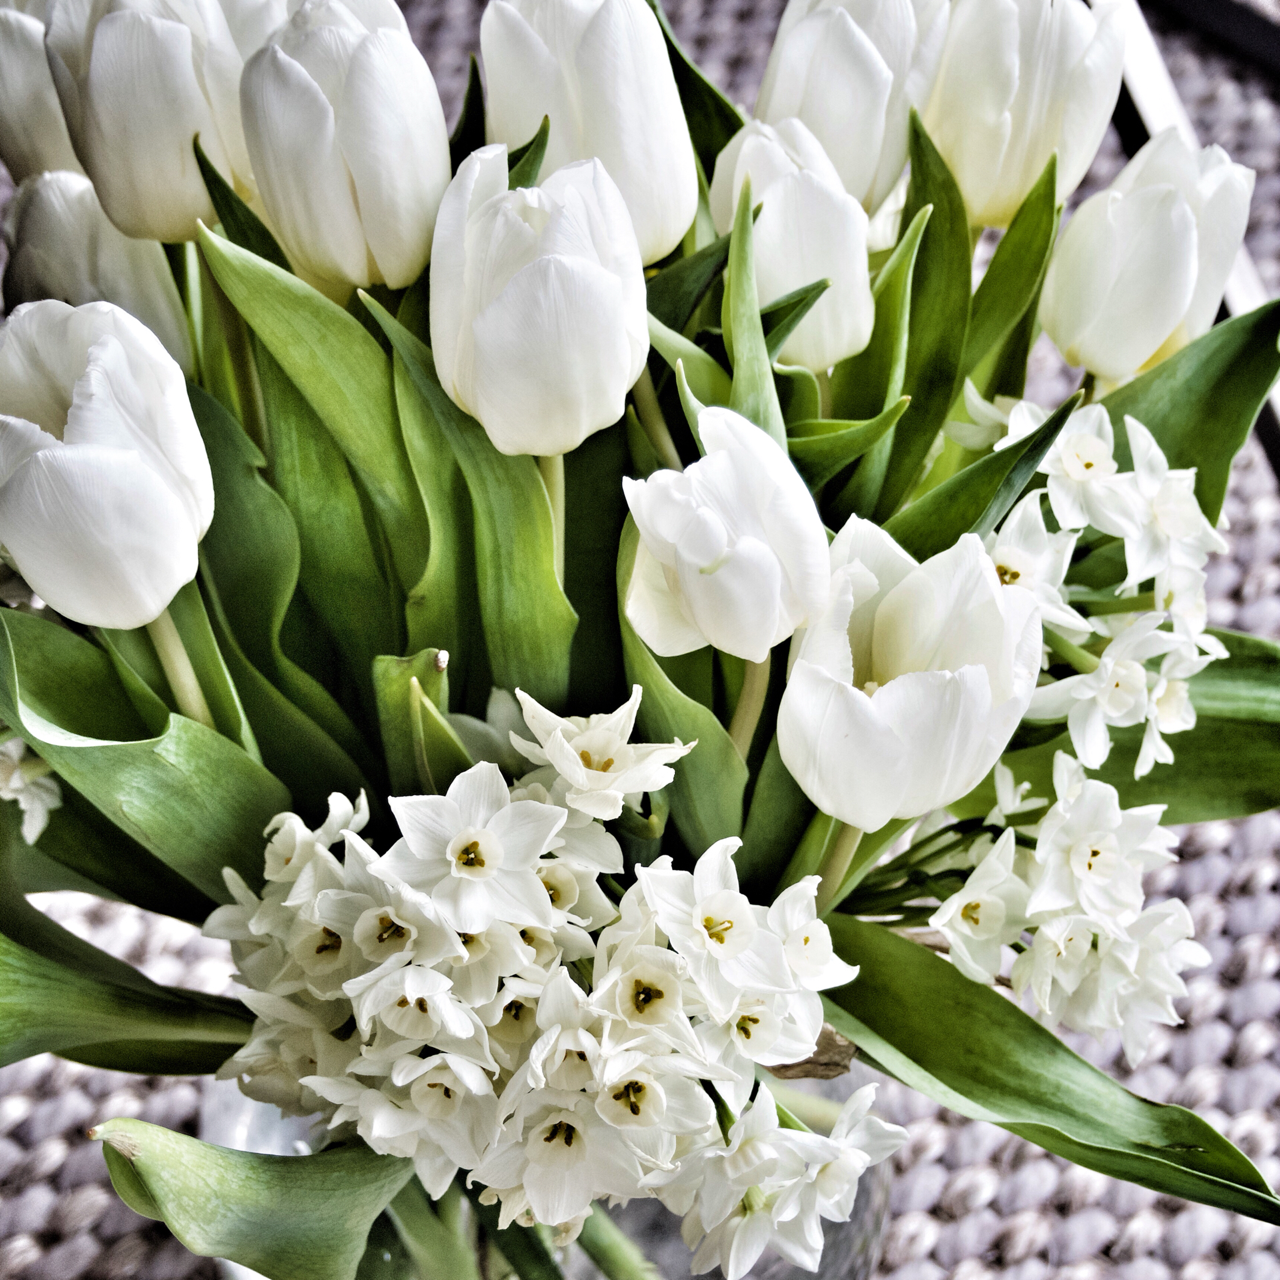 Tulips and Narcissi - gorgeous Spring flowers.